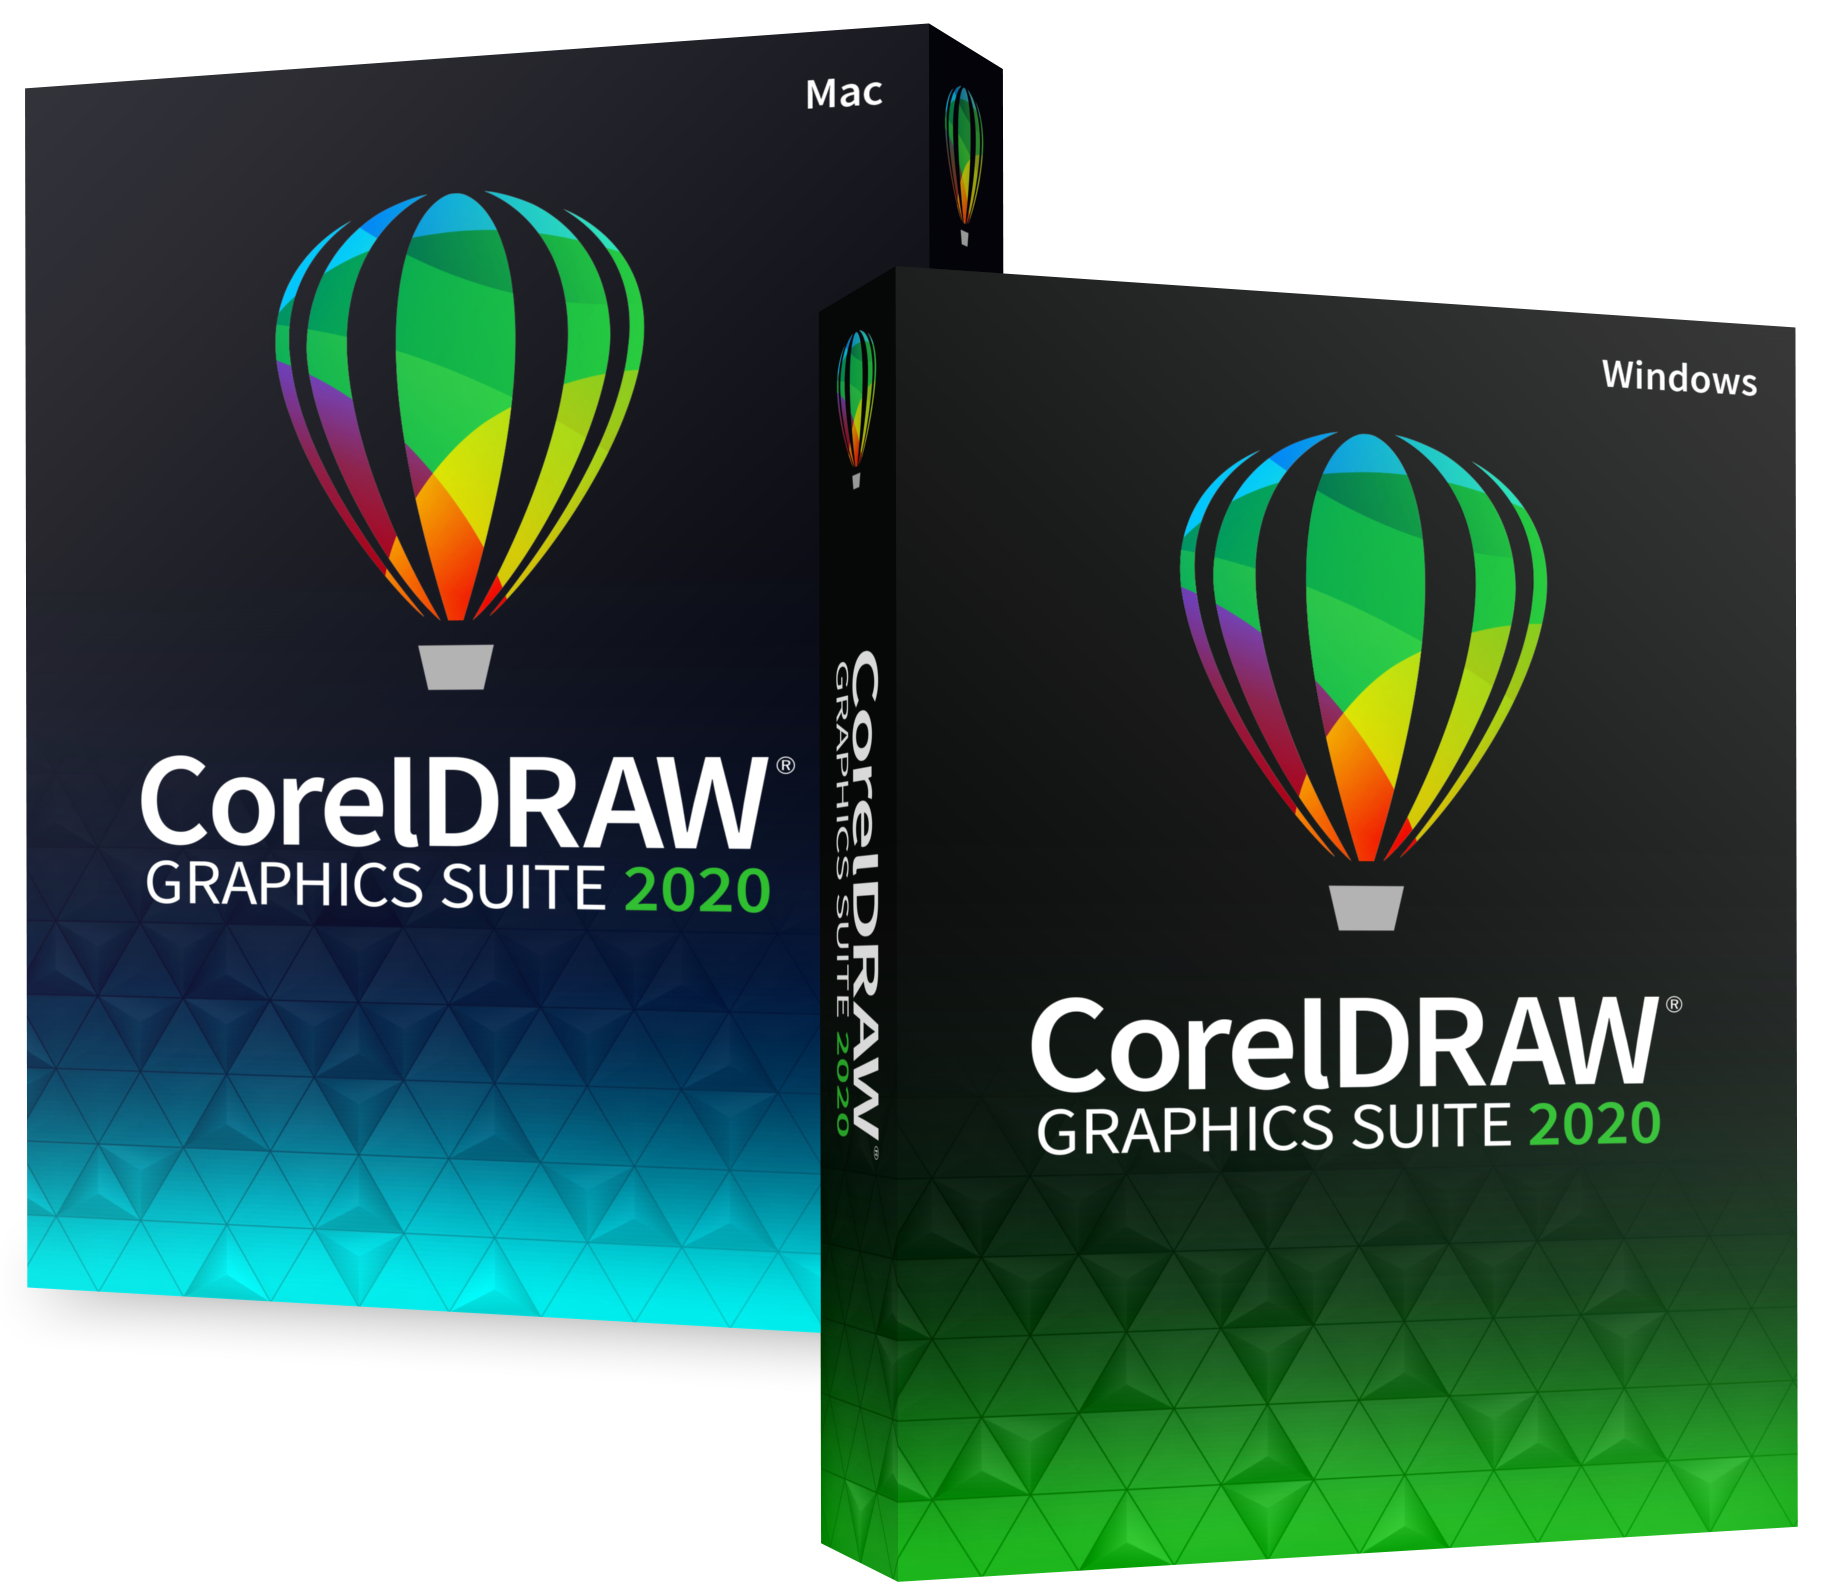 coreldraw-graphics-suite2020-box-windows-mac-megasoft-software-solution.png